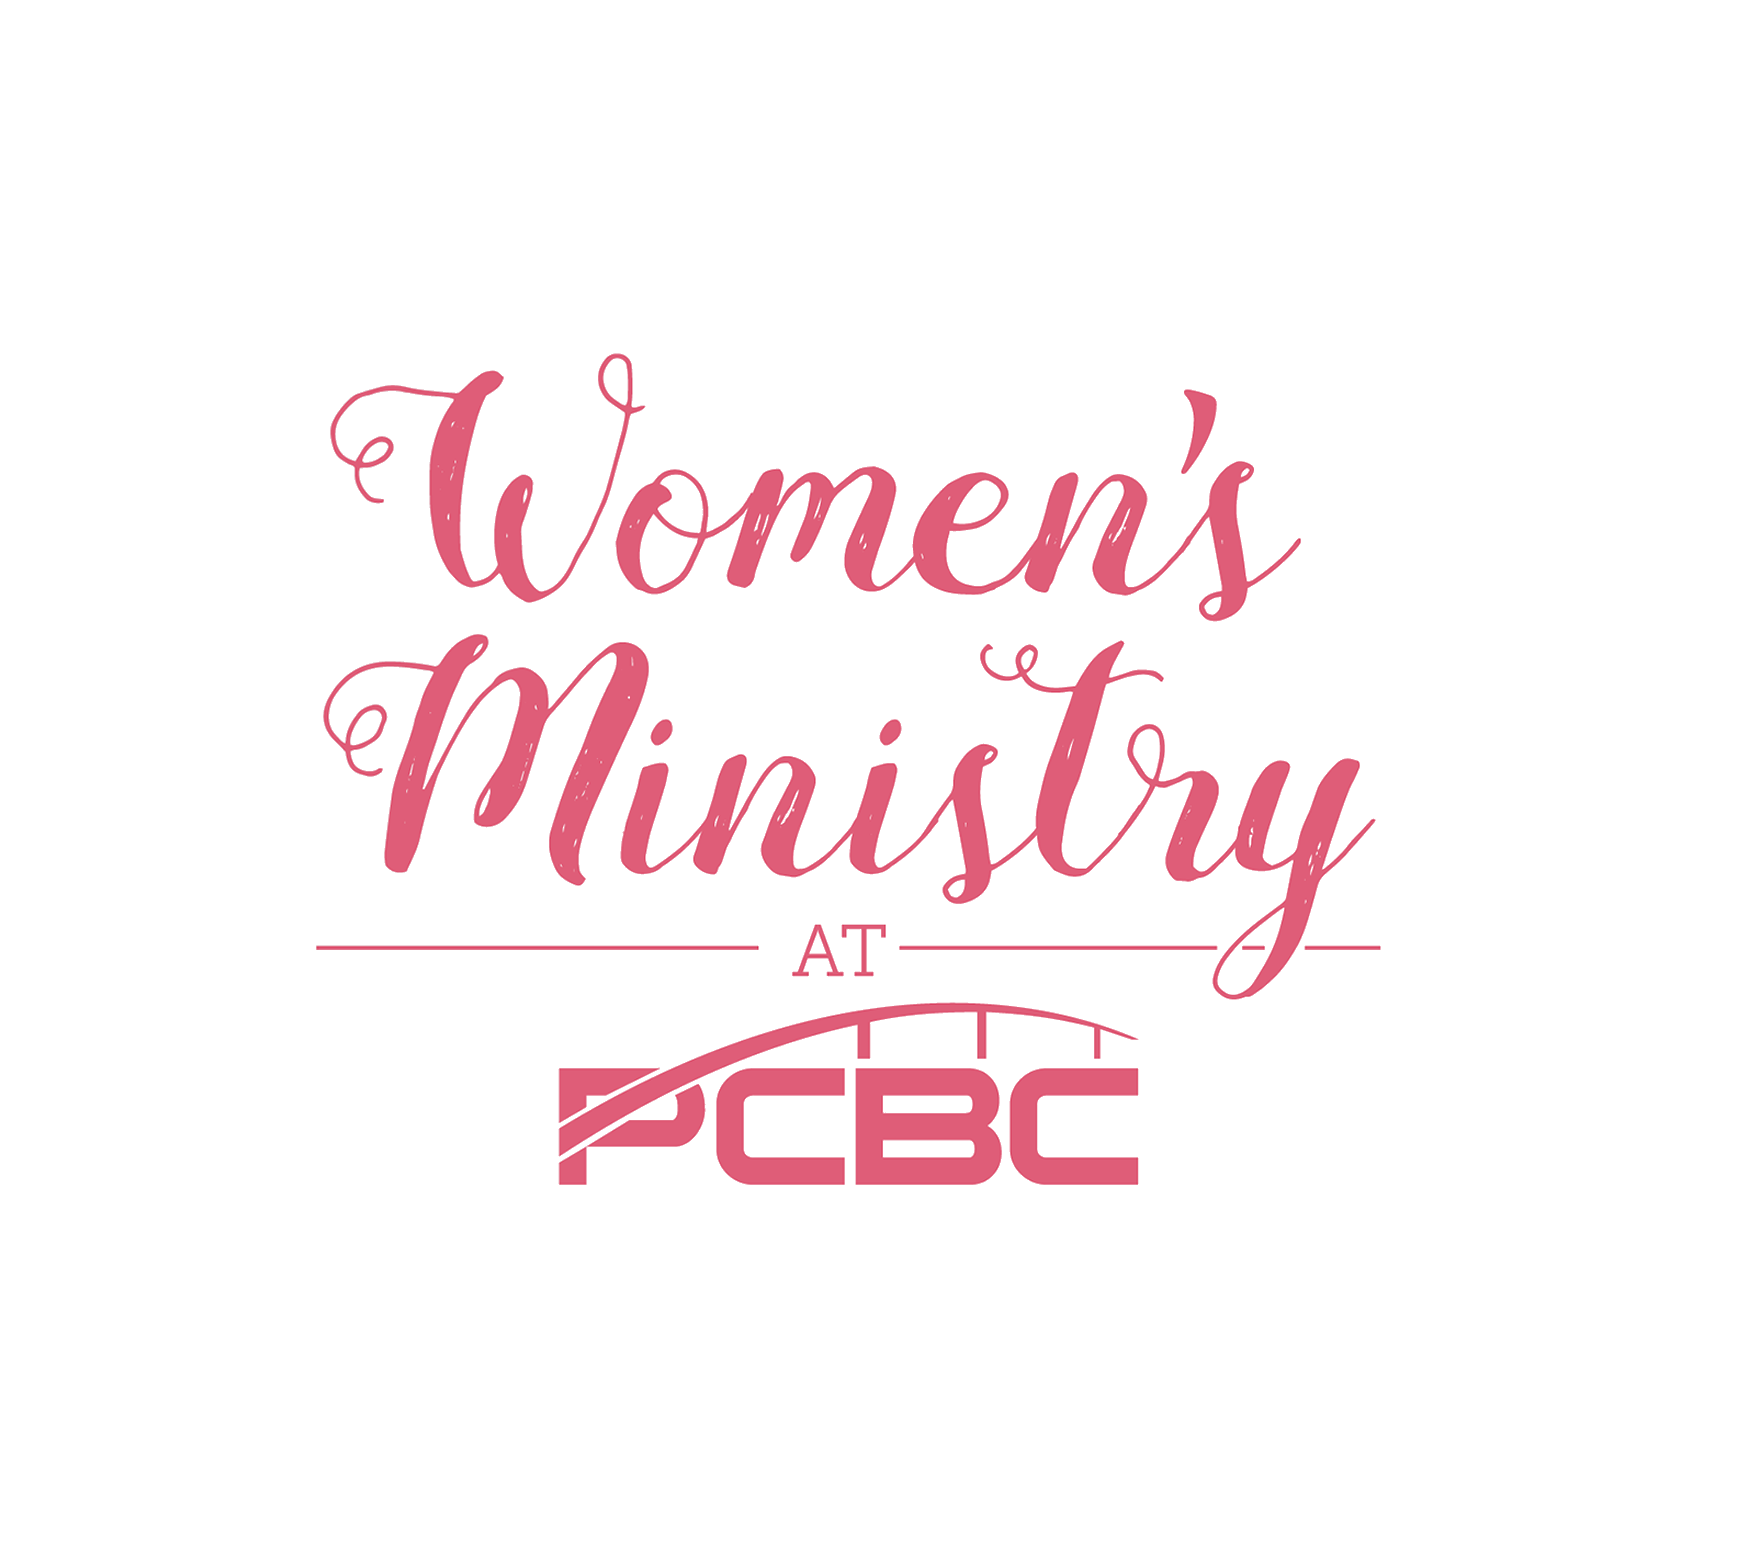 PCBC Women's Ministry